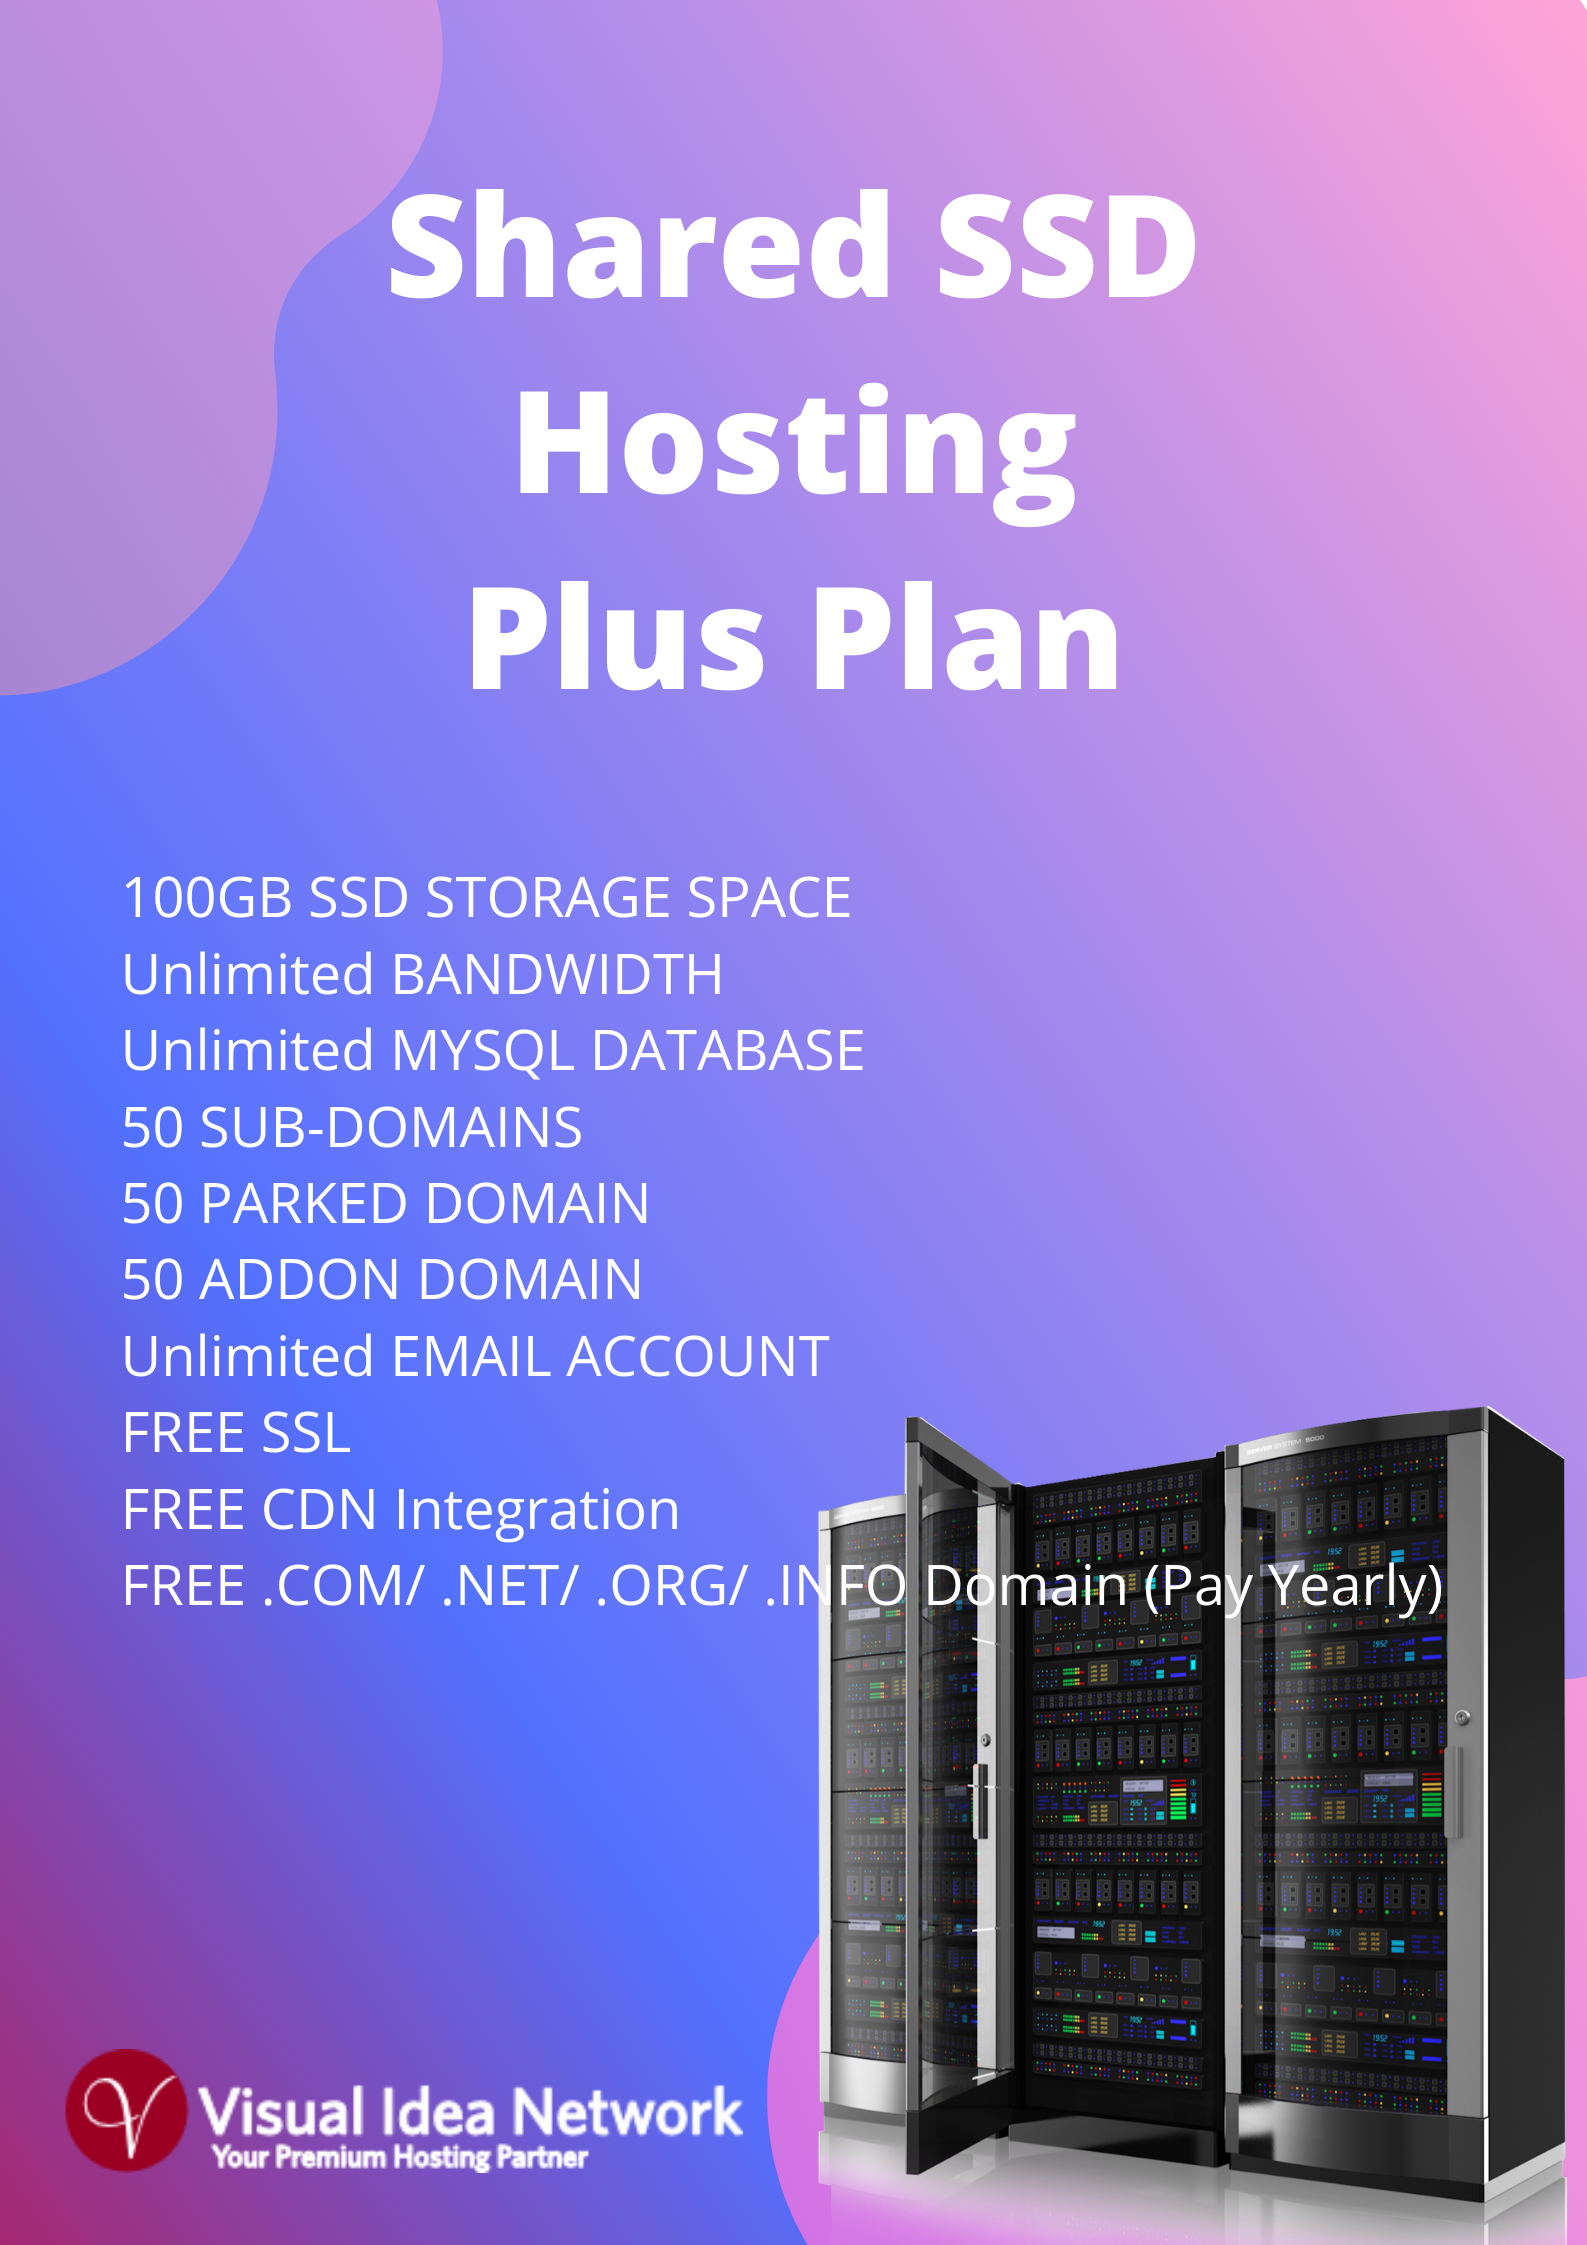 Shared SSD Plus Hosting Plan with Unlimited Bandwidth